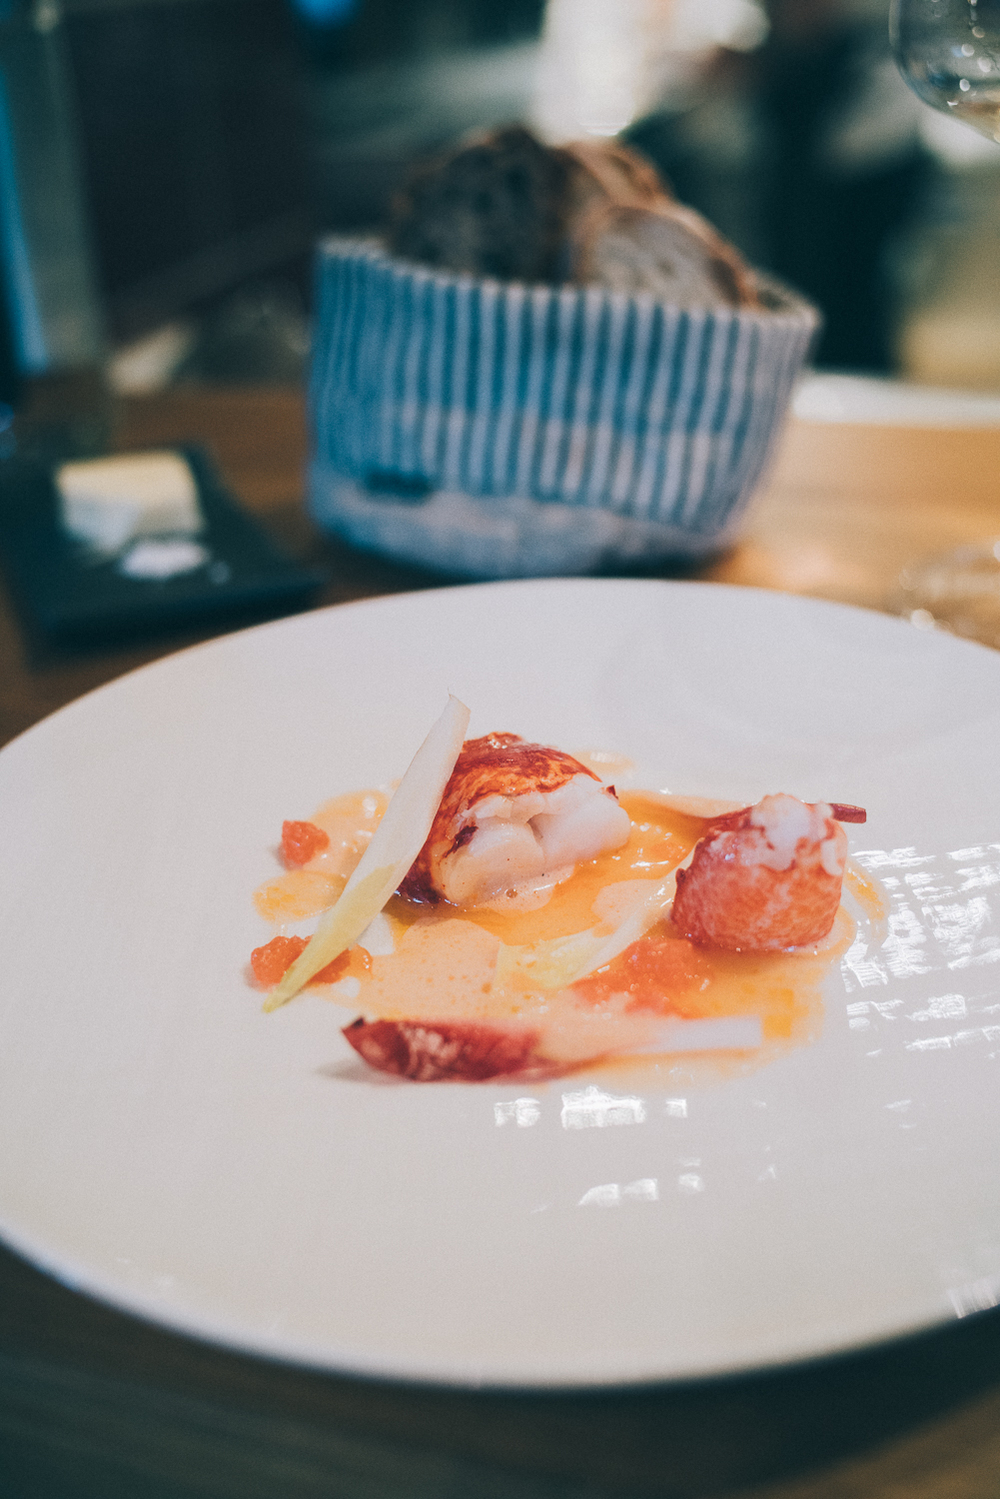 Lobster, Coral sauce